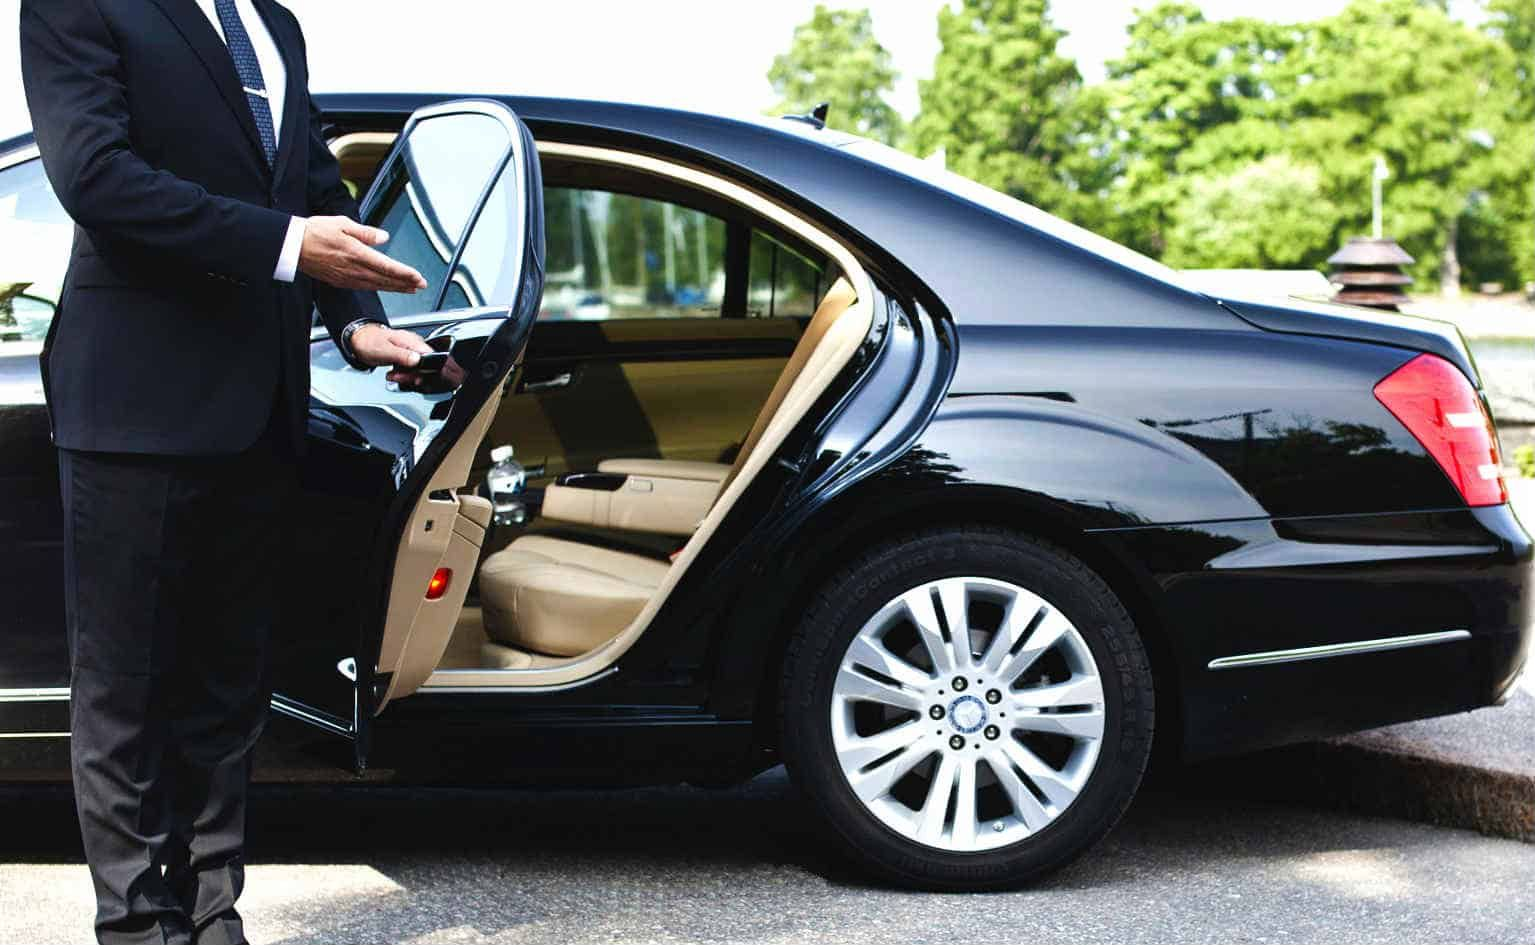 Travel Transfers Our Fully Experienced Drivers Can Provide Full Or Part Time Services Available For One O In 2019 Black Car Service Town Car Service Luxury Car Rental